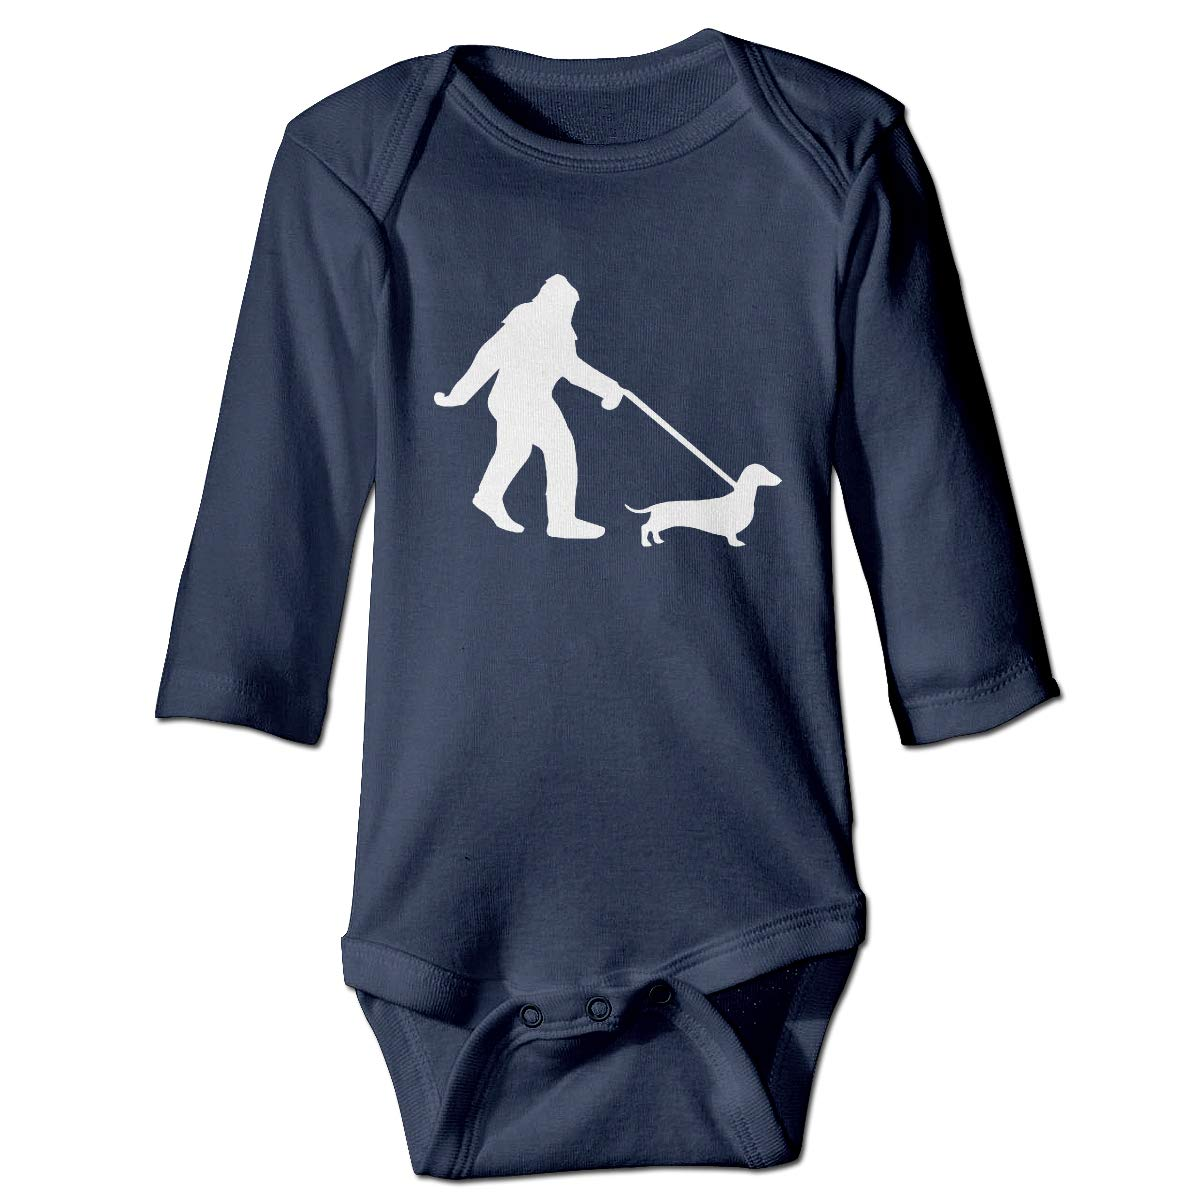 A14UBP Infant Baby Boys Girls Long Sleeve Jumpsuit Romper Bigfoot Walking Dachsund Unisex Button Playsuit Outfit Clothes